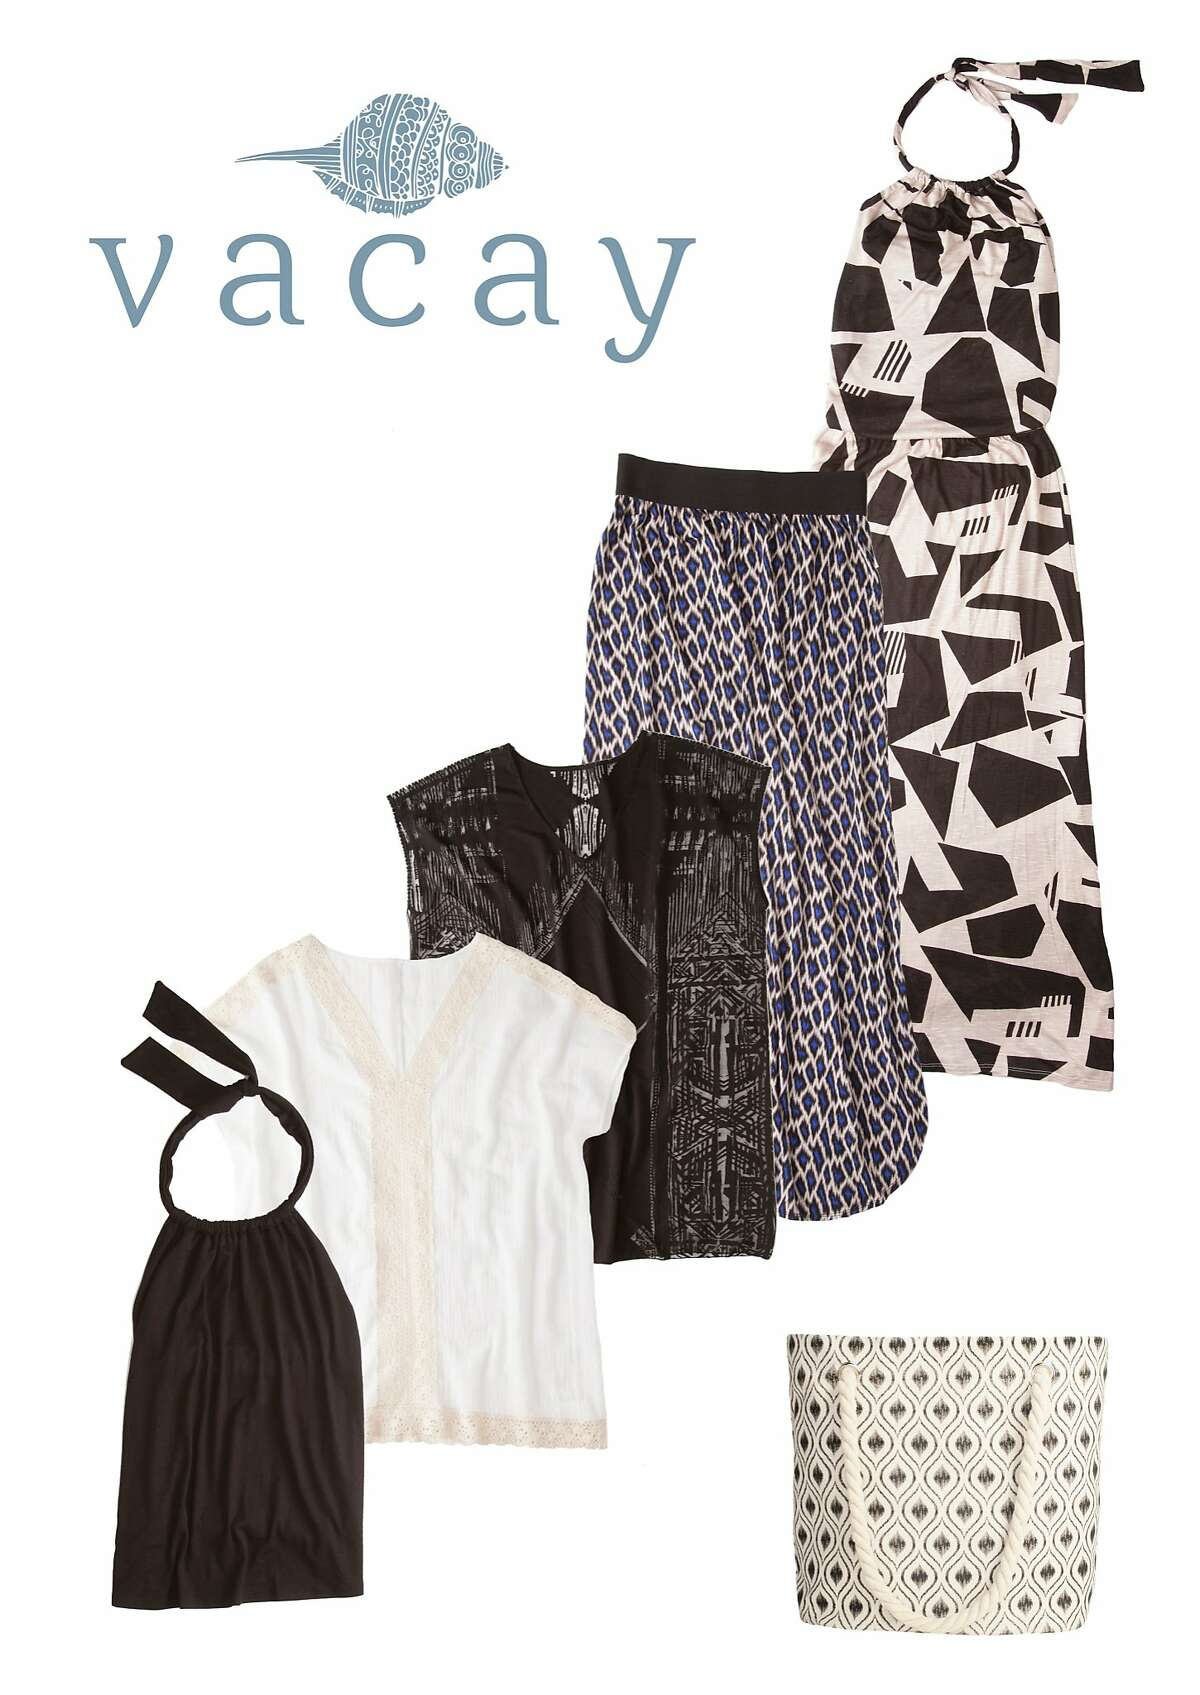 Vacay's new five-piece Fiji collection comes out July 5 and is available at http://vacaystyle.com/.